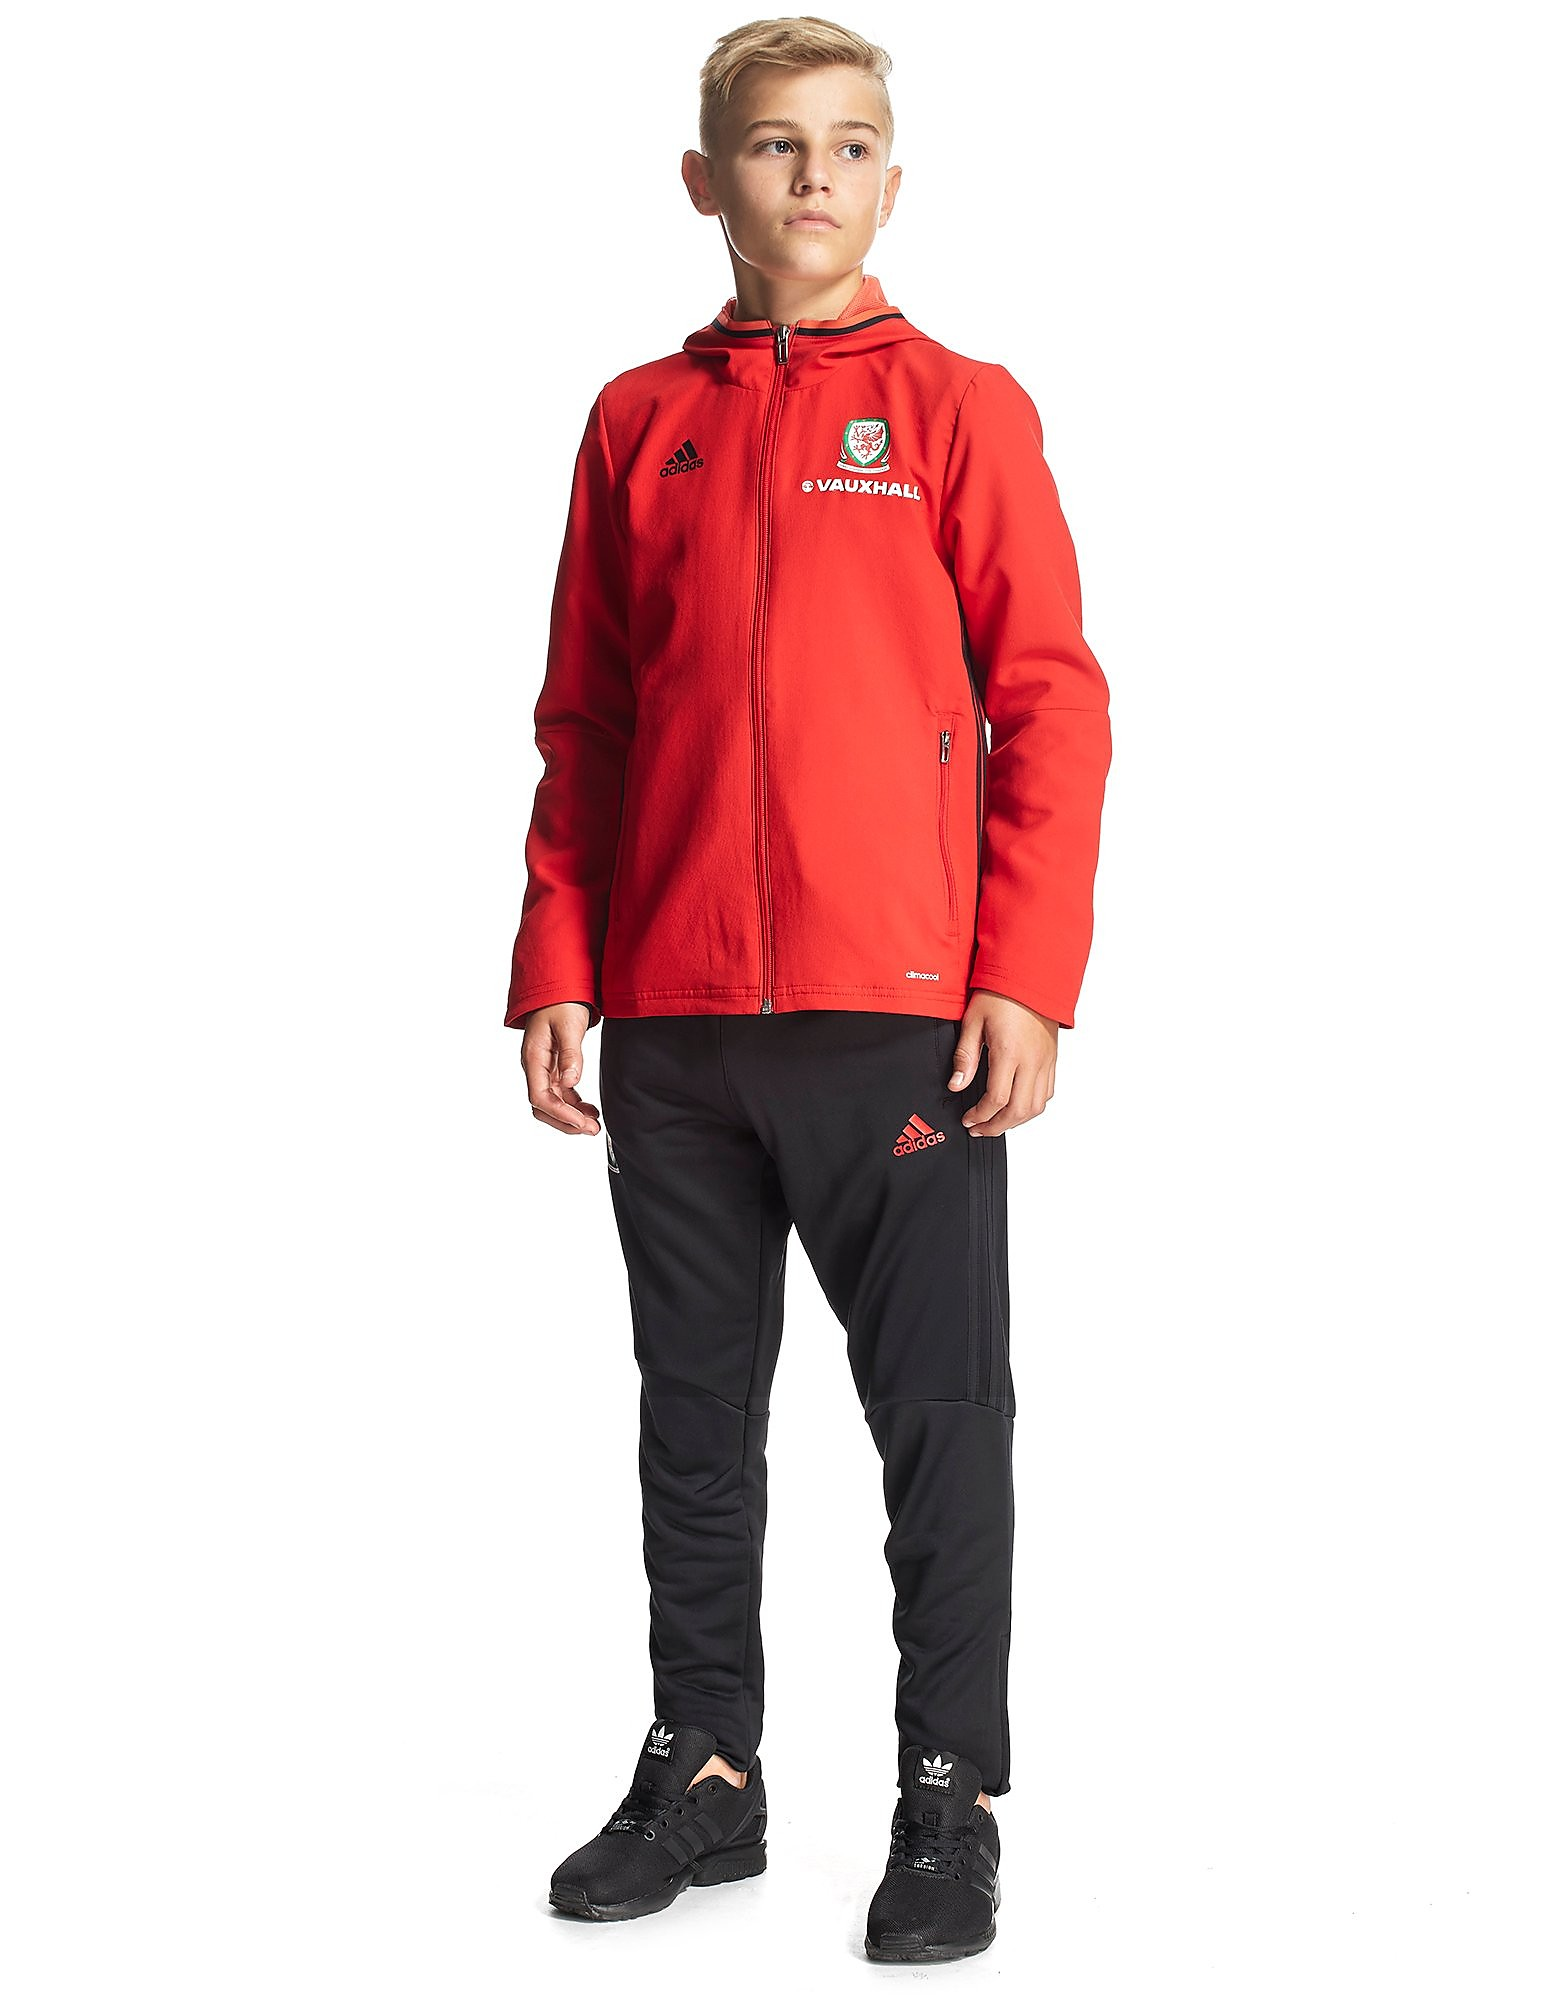 adidas Wales 2016/17 Presentation Suit Junior